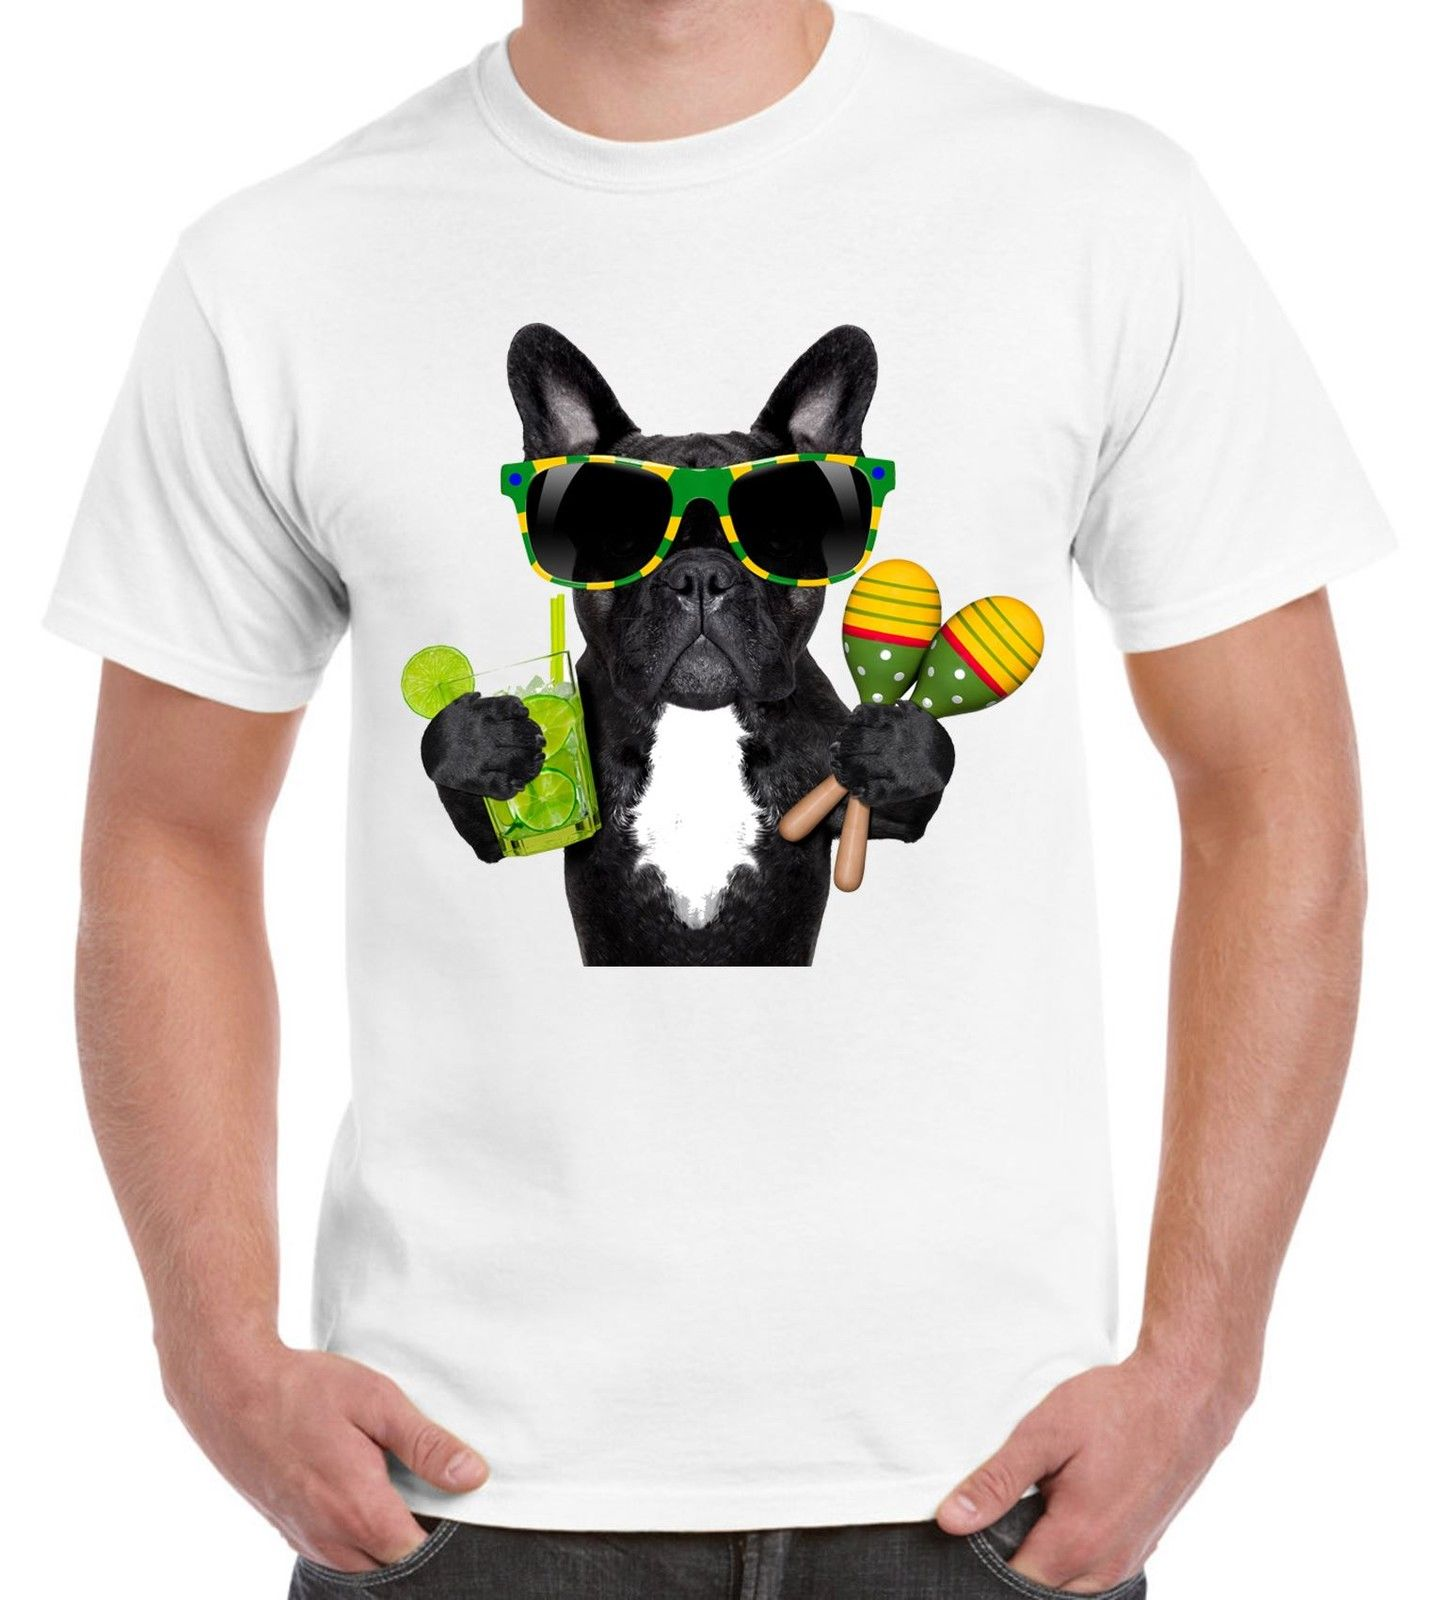 Loyal French Bulldog Brazillian Style Mens T-shirt T-shirts Bulldogs Brazil Funny Cartoon T Shirt Men Unisex New Fashion Tshirt Buy One Get One Free Tops & Tees